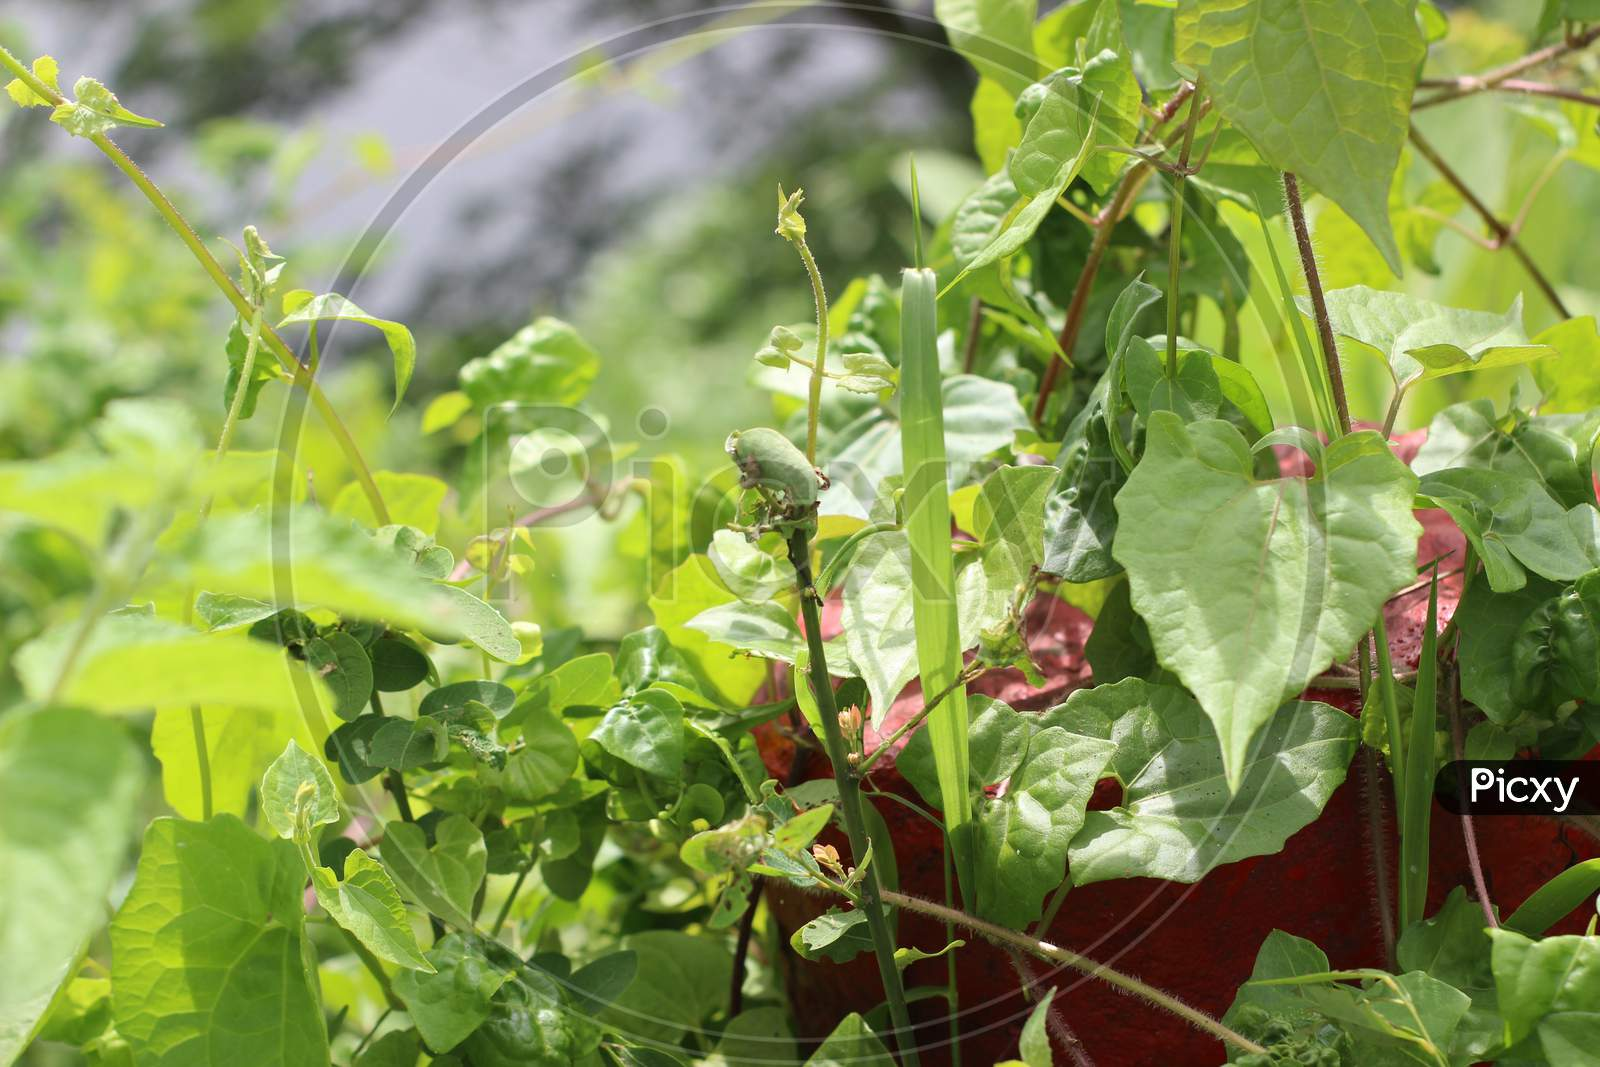 Beans On The Bush In The Garden - Organic Food